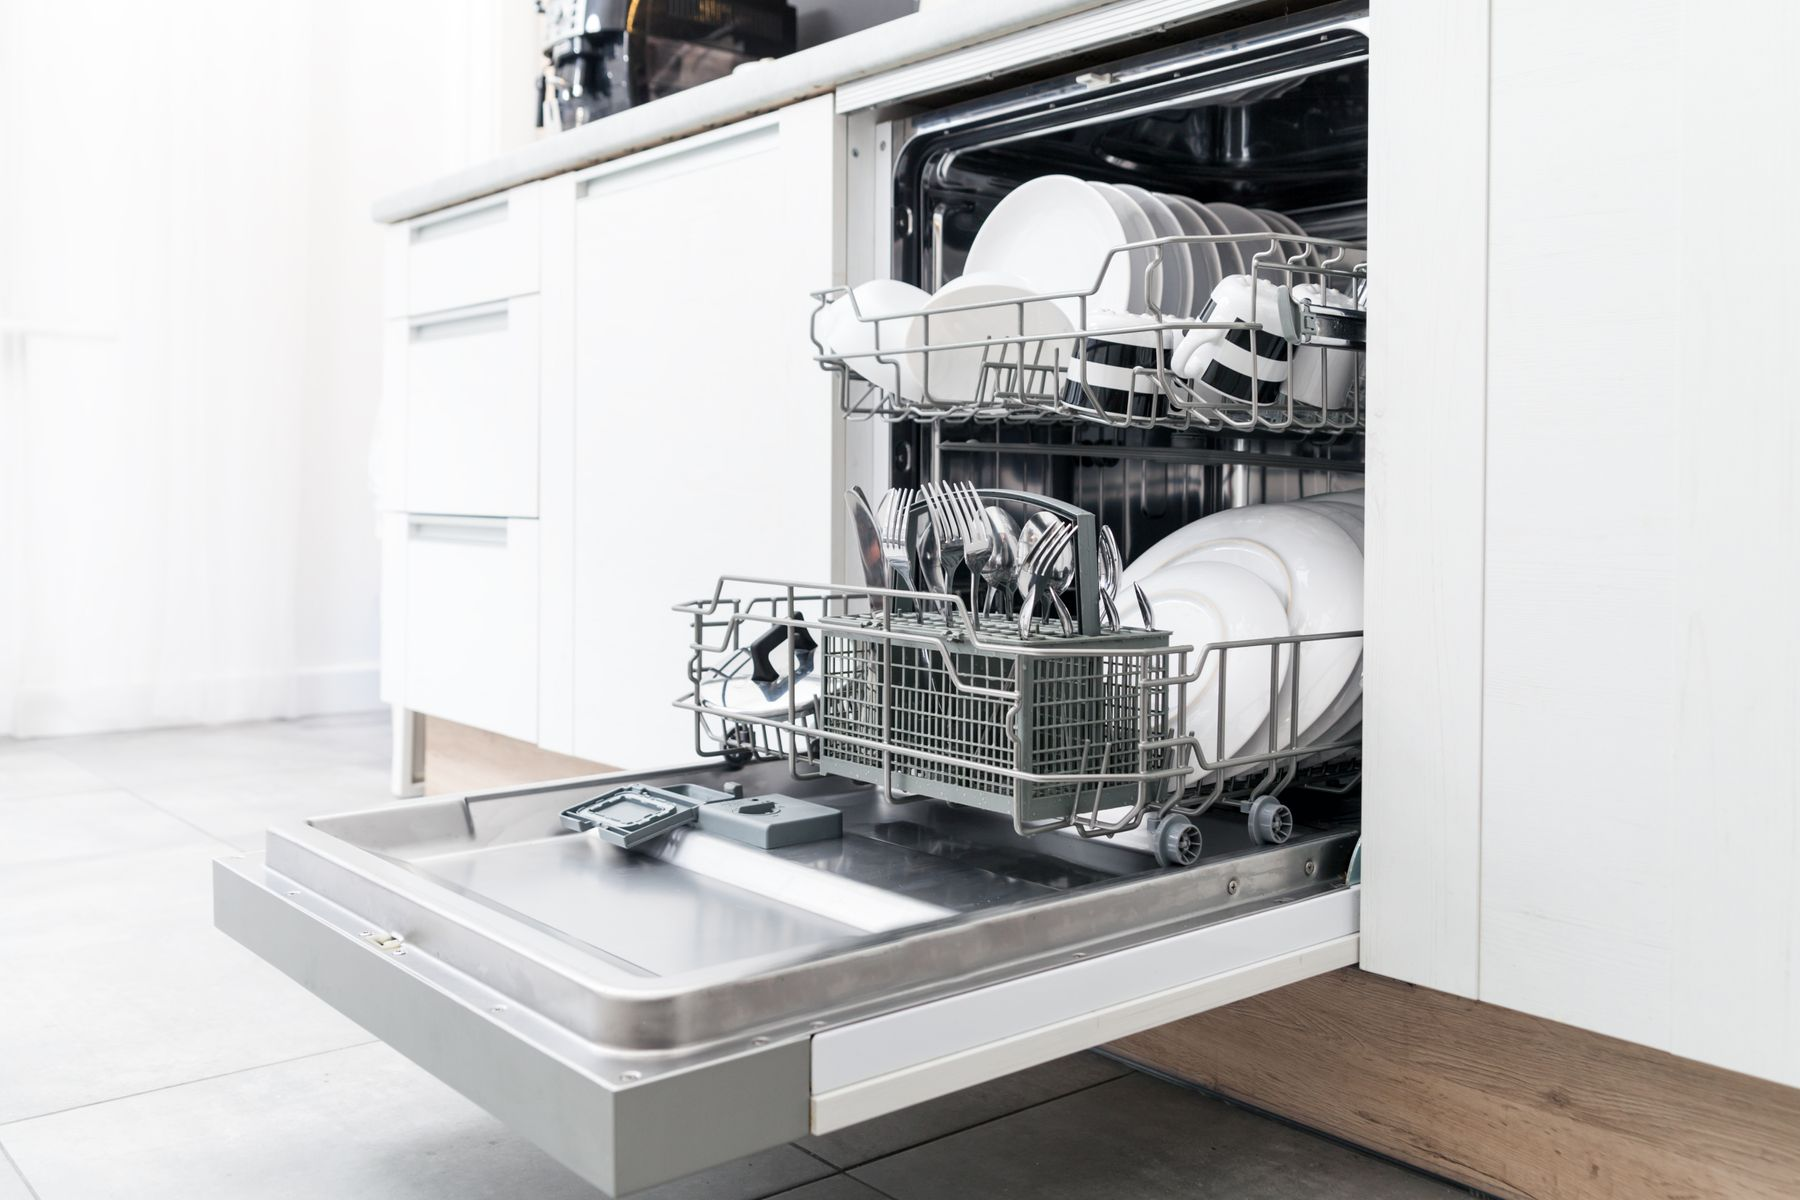 Get The Best Cleaning Results From Your Dishwasher With These Tips